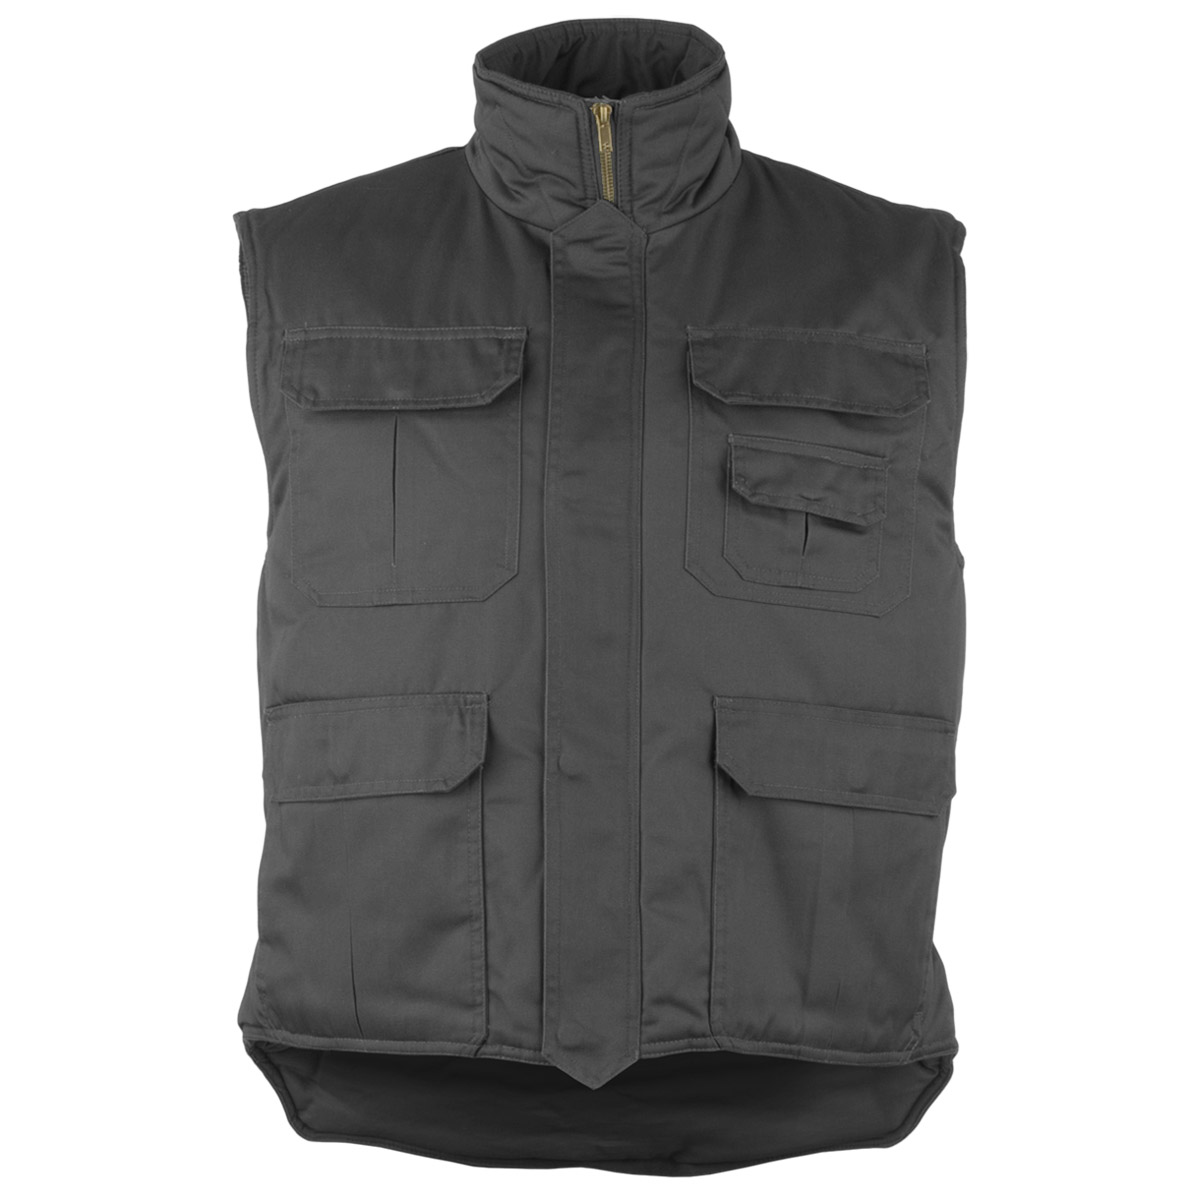 Free shipping 41% OFF Snap Button Design Zip Up Hooded Men's Padded Waistcoat in BLACK S with only $ online and shop other cheap Vests & Waistcoats on sale at sashimicraft.ga Fashion Clothing Site with greatest number of Latest casual style Dresses as well as other categories such as men, kids, swimwear at a affordable price.